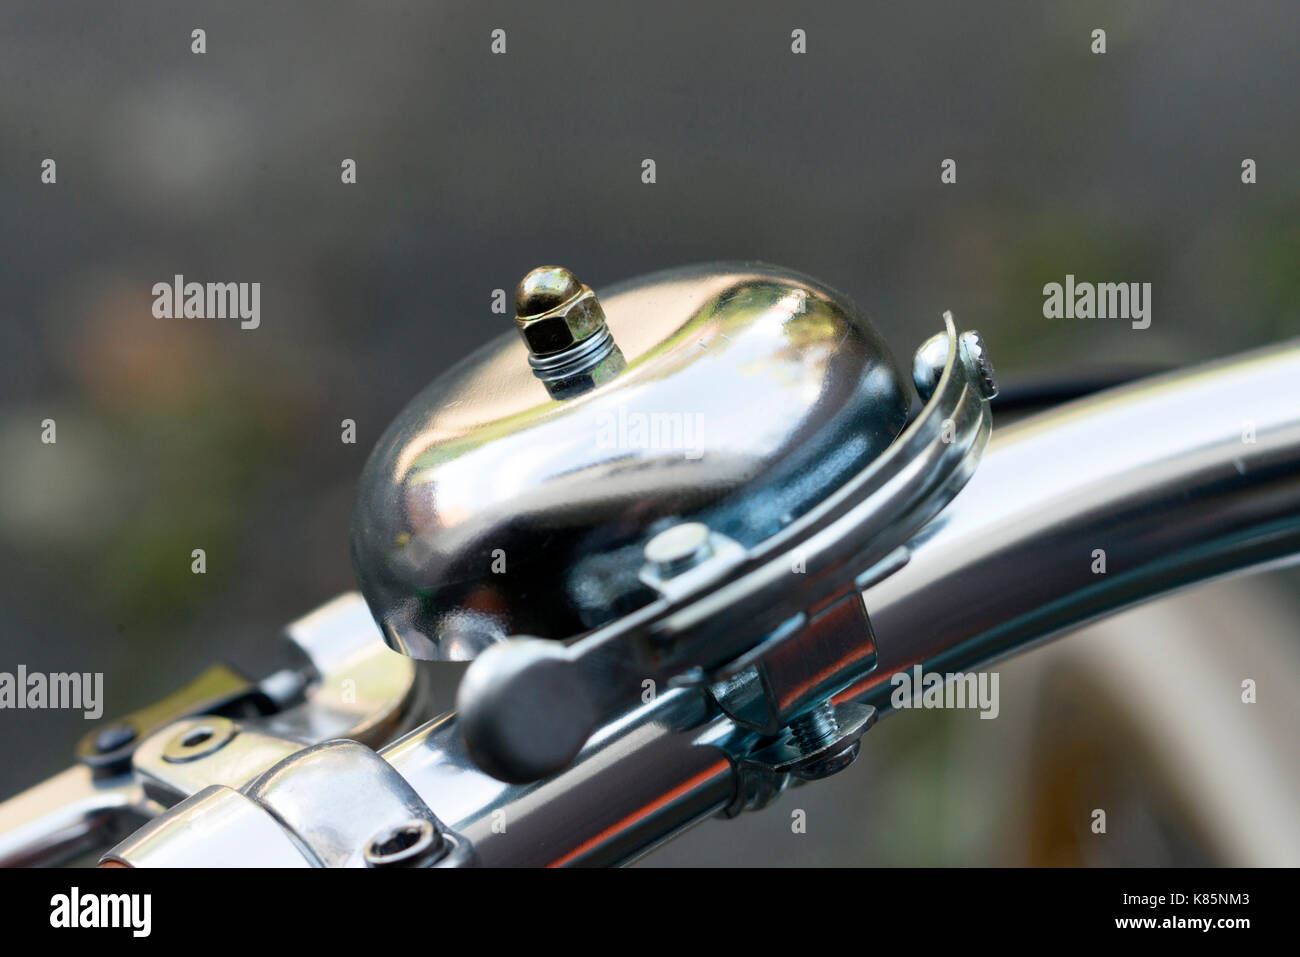 Bicycle bell - Stock Image